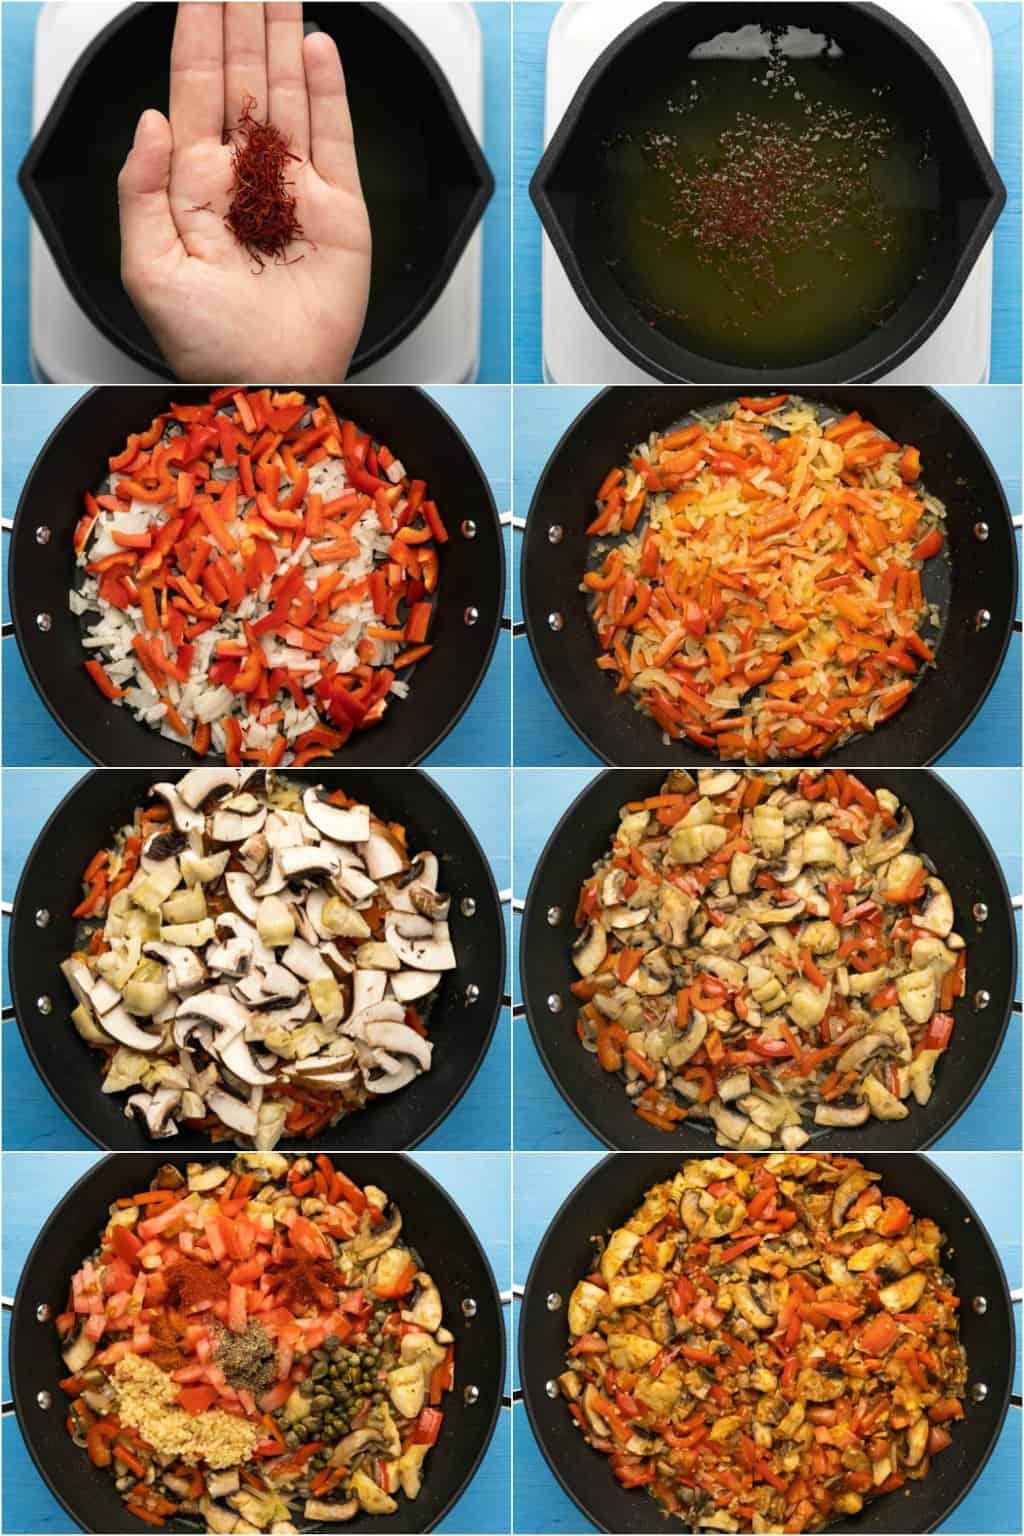 Step by step process photo collage of making vegan paella.